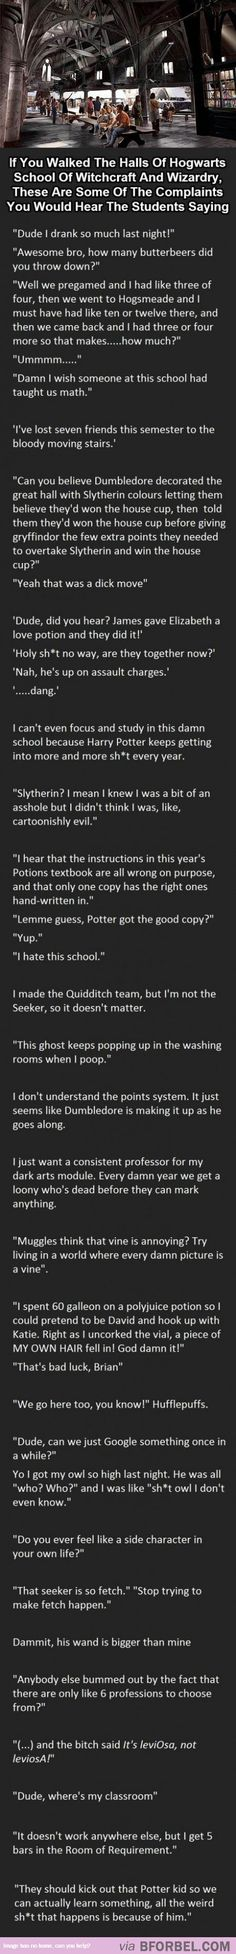 If Hogwarts Students Complained…